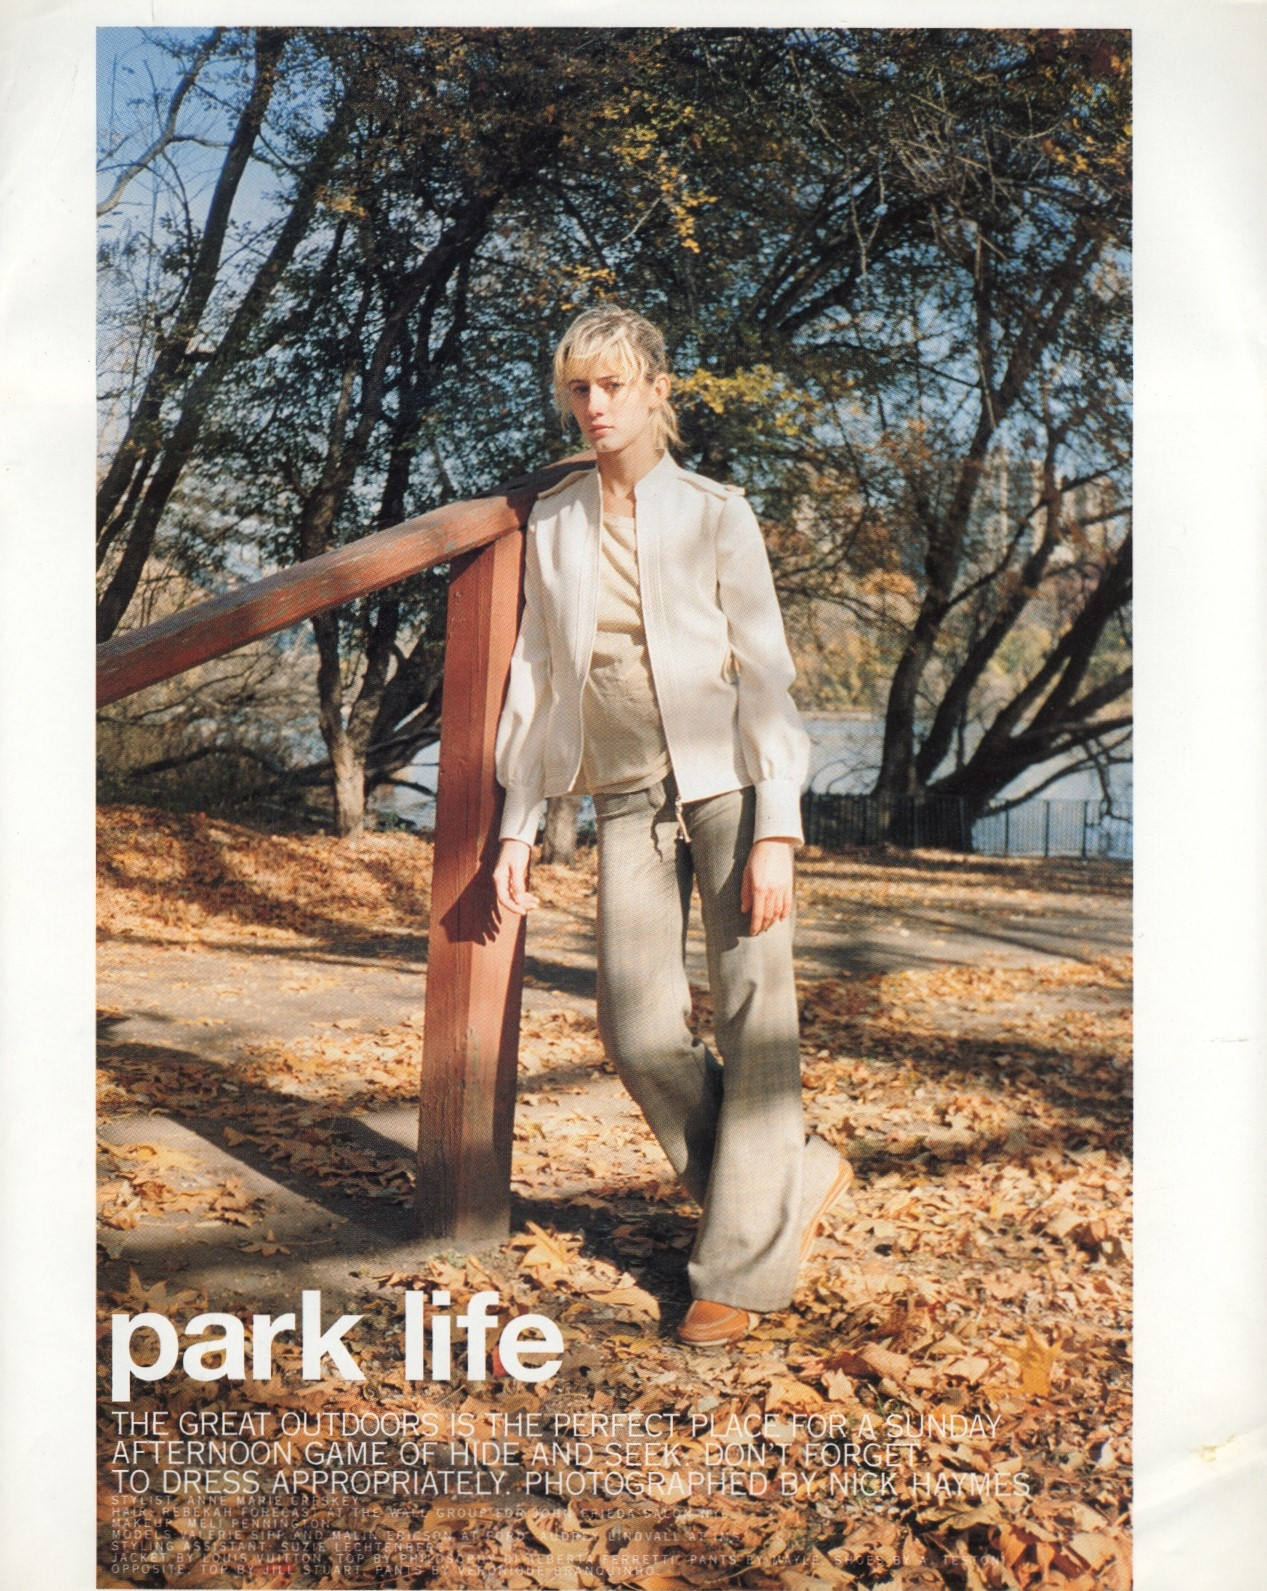 PARK LIFE | PHOTOGRAPHY NICK HAYMES